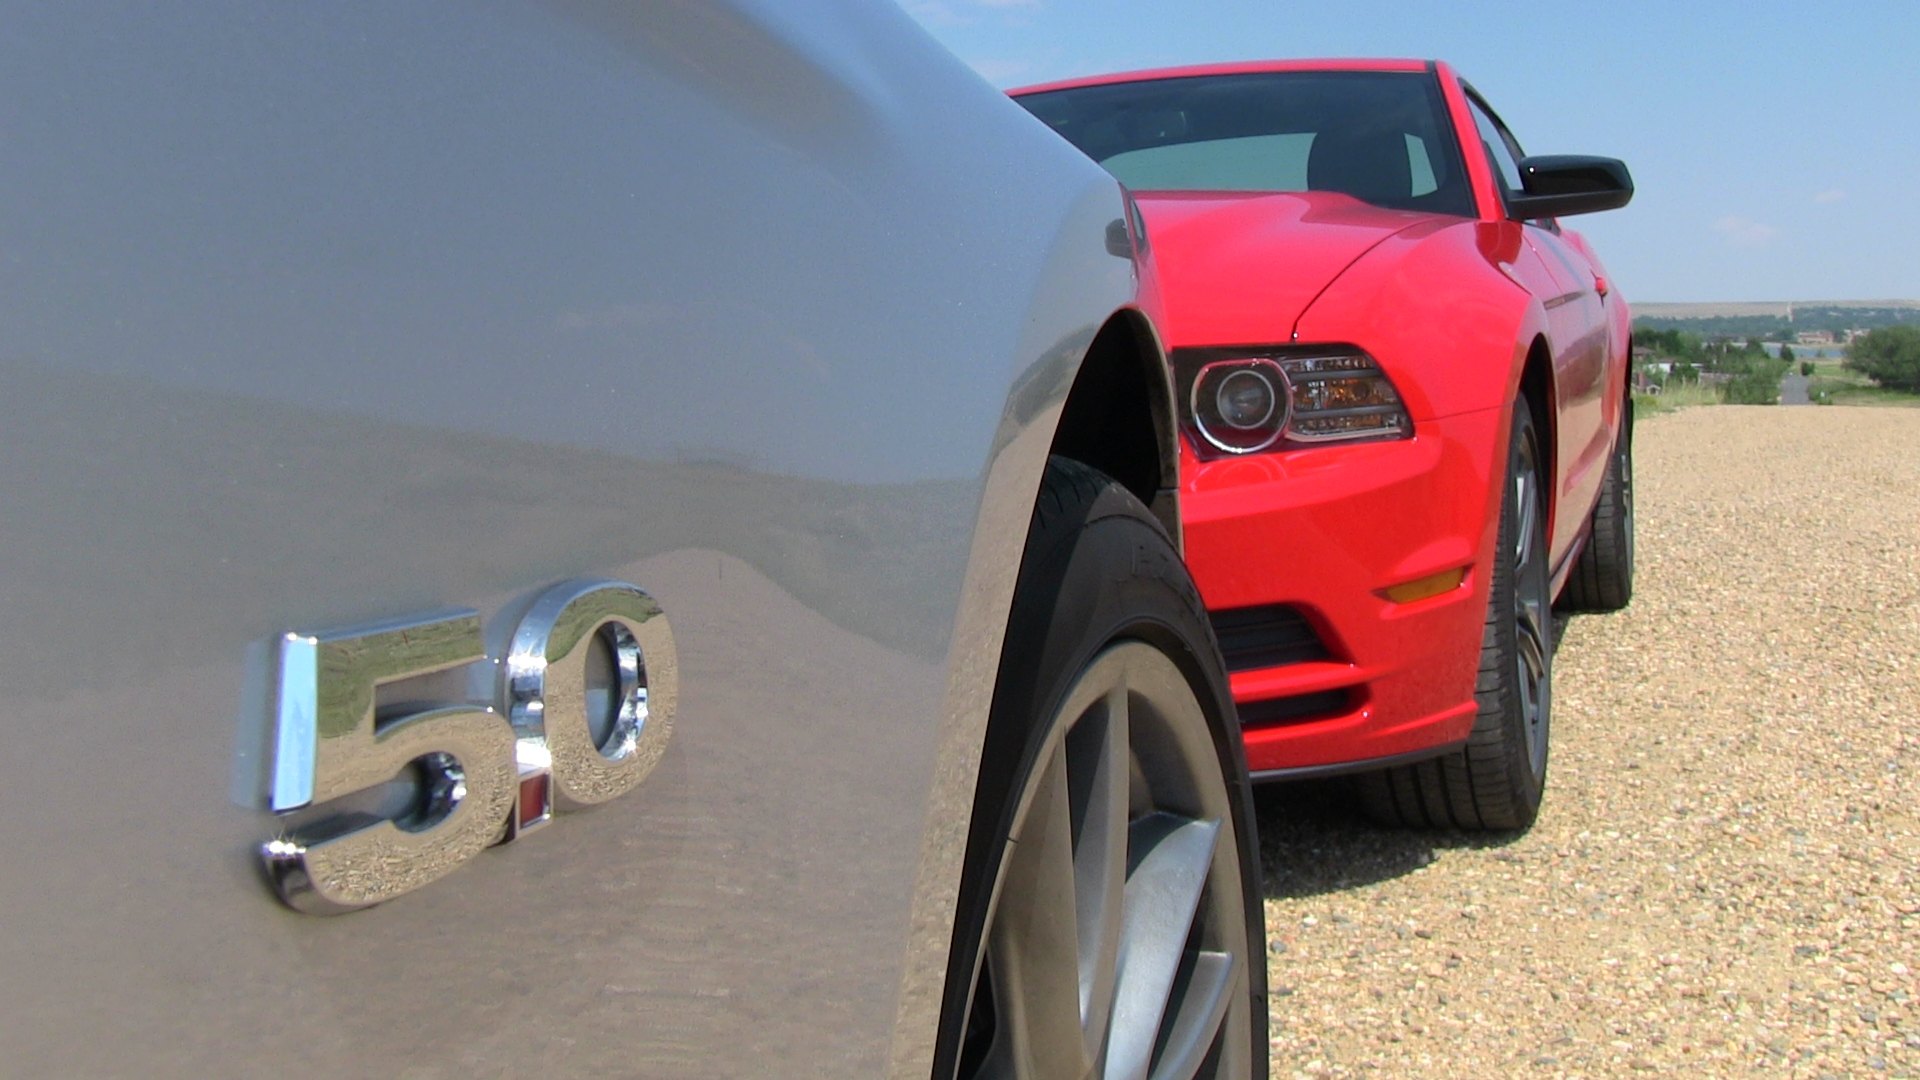 Mustang Gt 0 60 >> 2013 Ford Mustang Gt Vs V6 Mustang 0 60 Mph Mile High Mashup